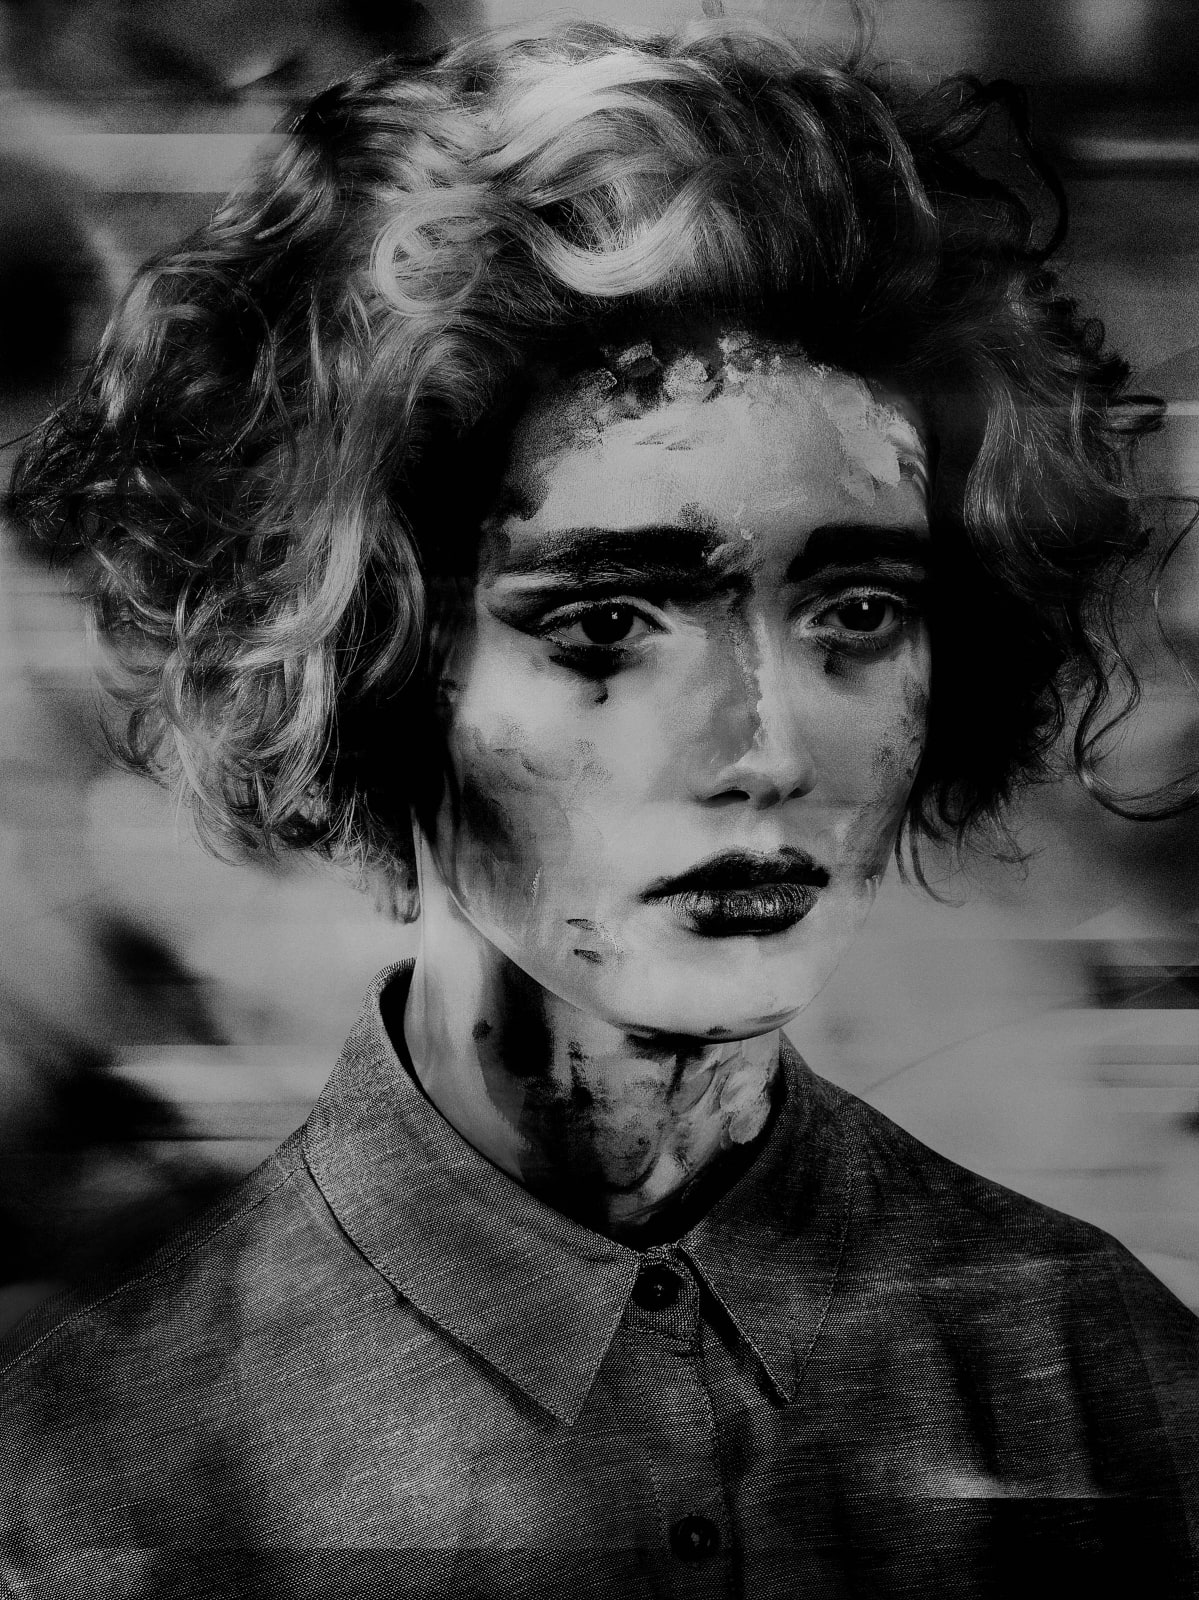 Valérie Belin Painted Ladies Lady Inpainting black and white portrait of woman with painted face and painted digital effects